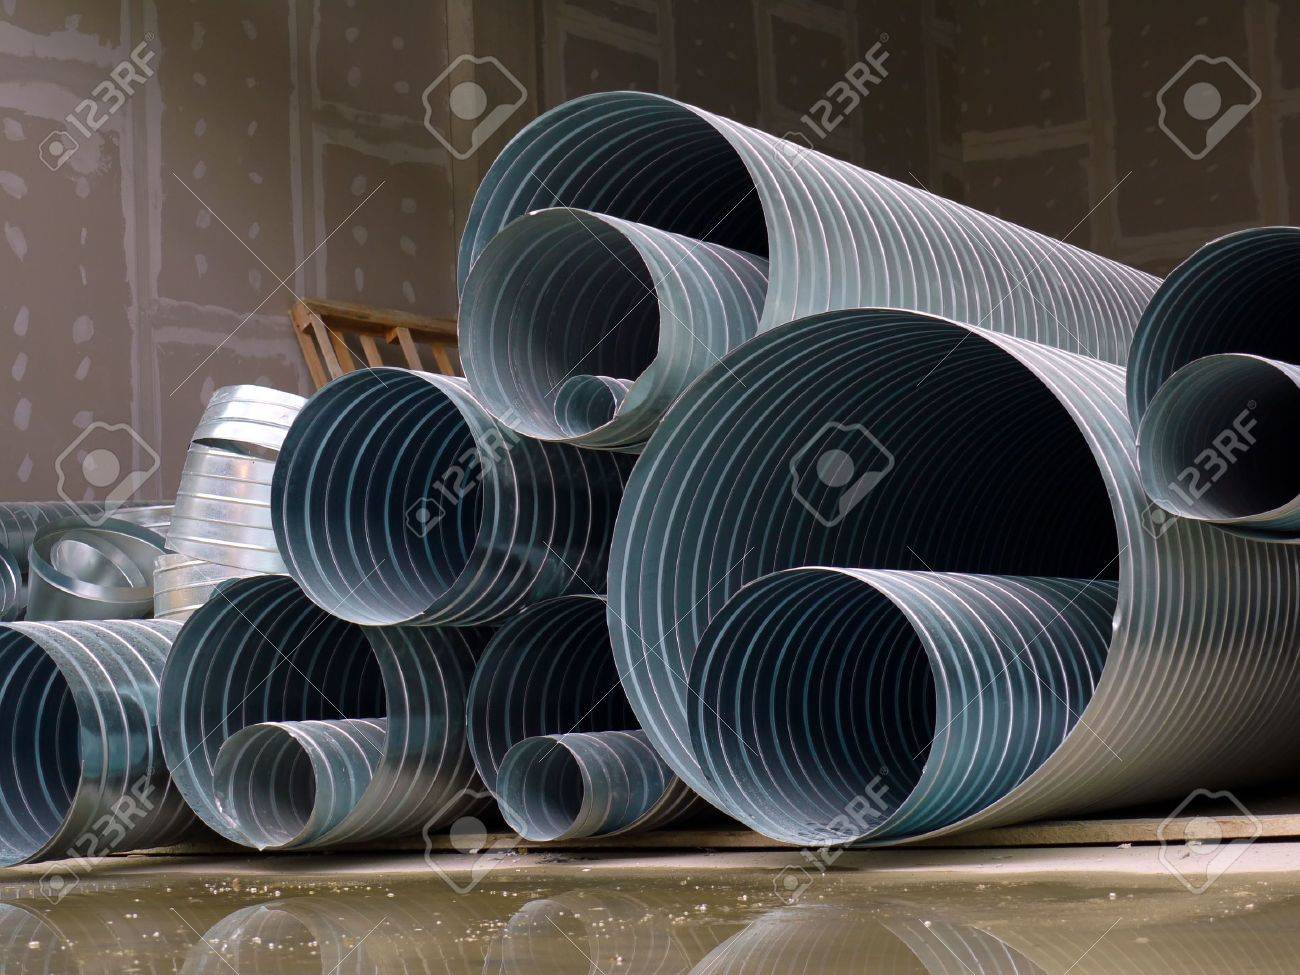 Pile of steel corrugated pipes stacked at construction site Stock Photo - 5238906